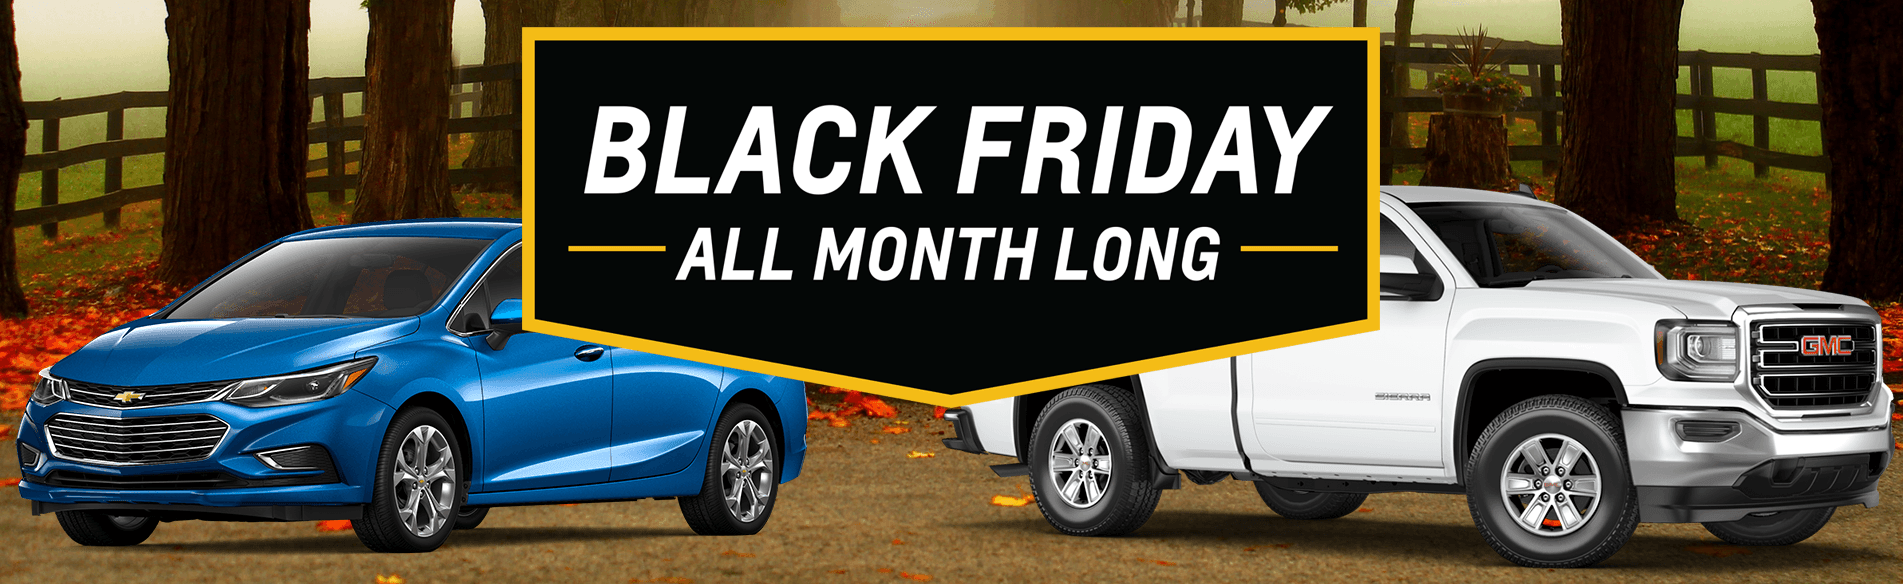 Get up to $1,500 in total Black Friday Value on select 2017 and 2018 vehicles when you apply for the GM Card